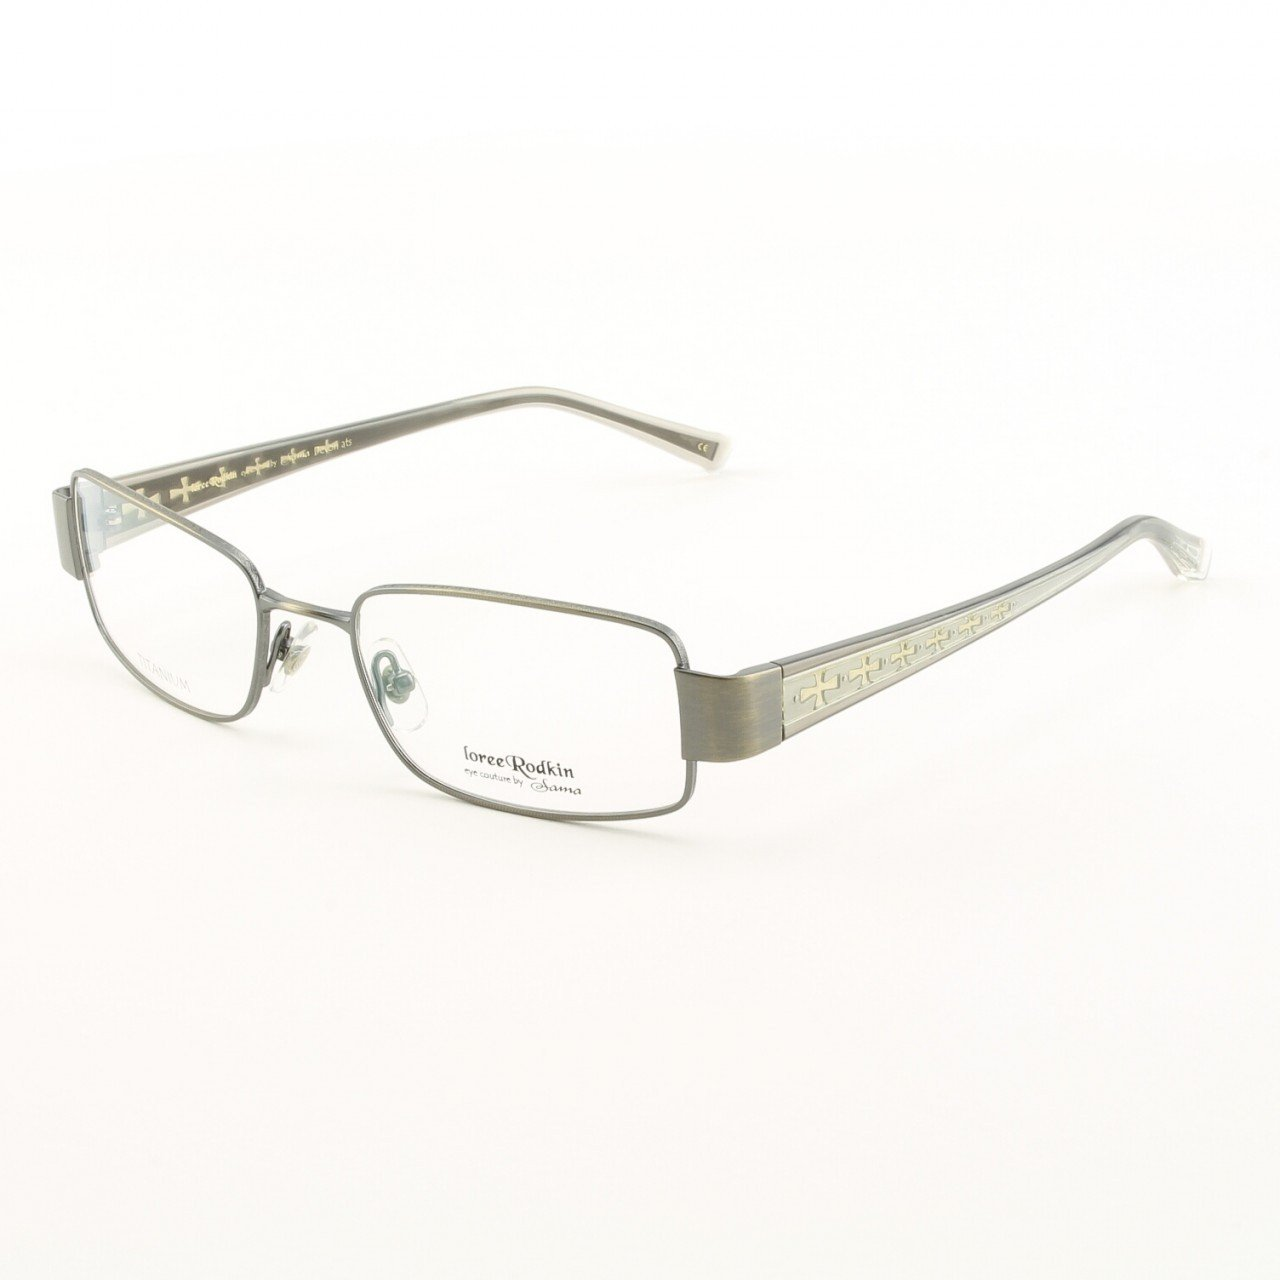 Loree Rodkin Devon Eyeglasses by Sama Col. with Clear Lenses and Decorative Temple Core